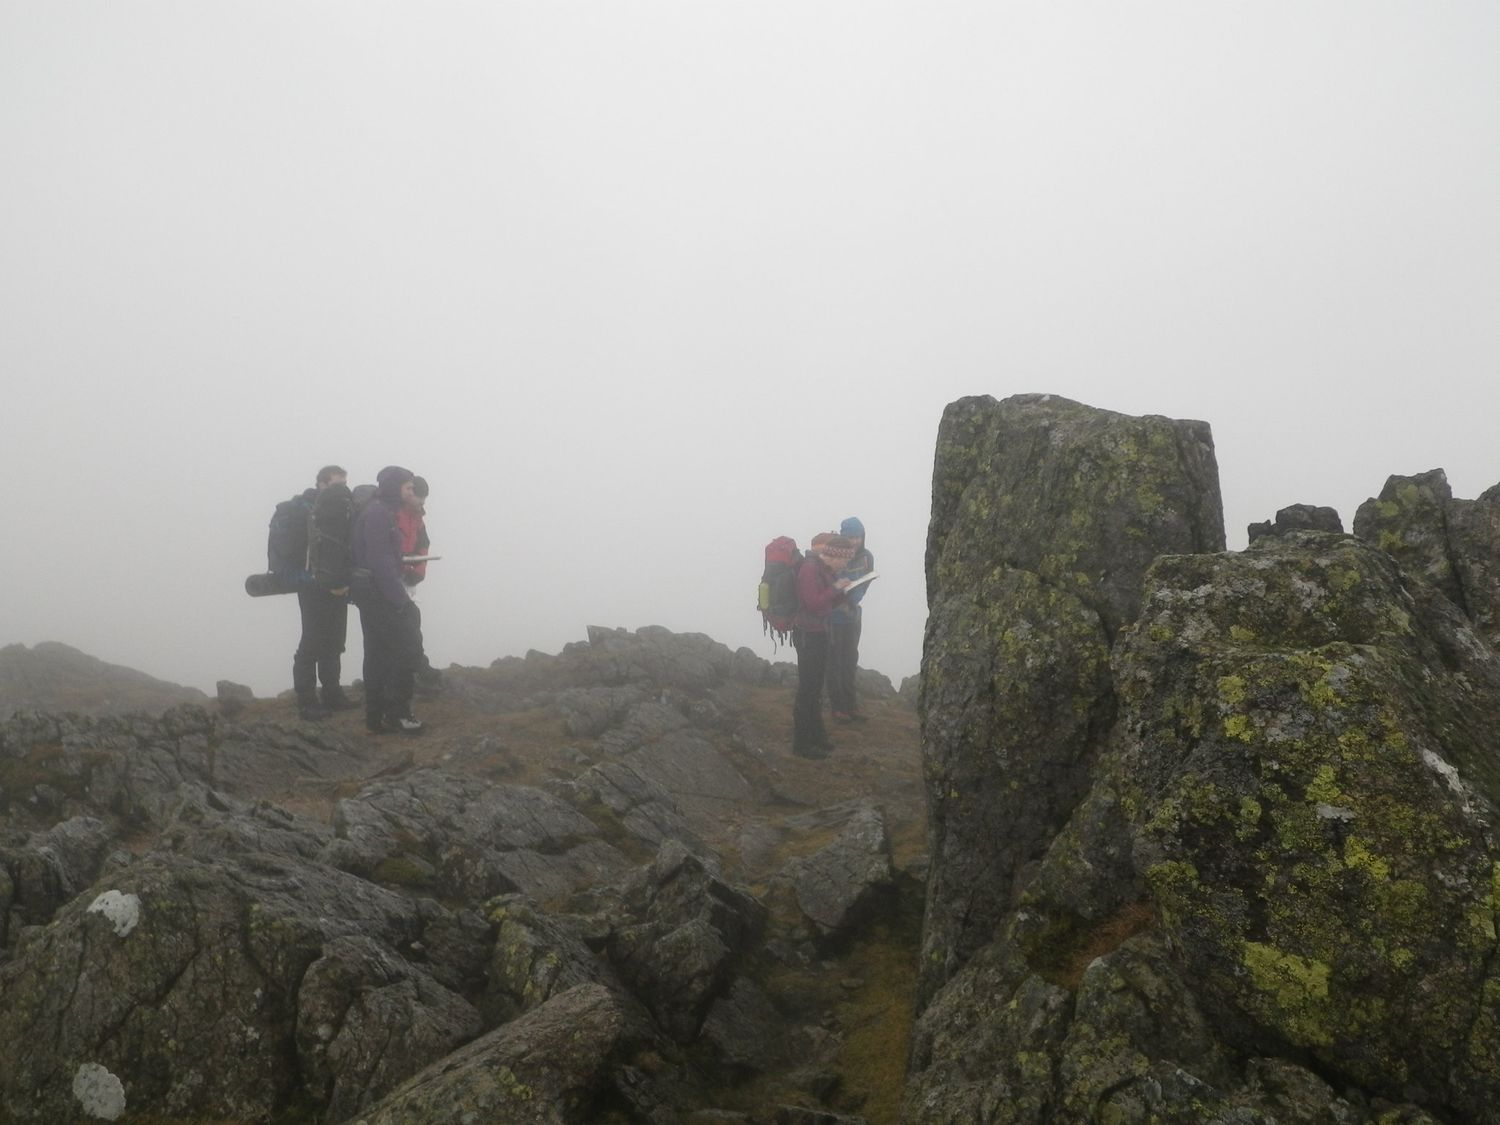 Mountain leader training candidates walking in limited visibility